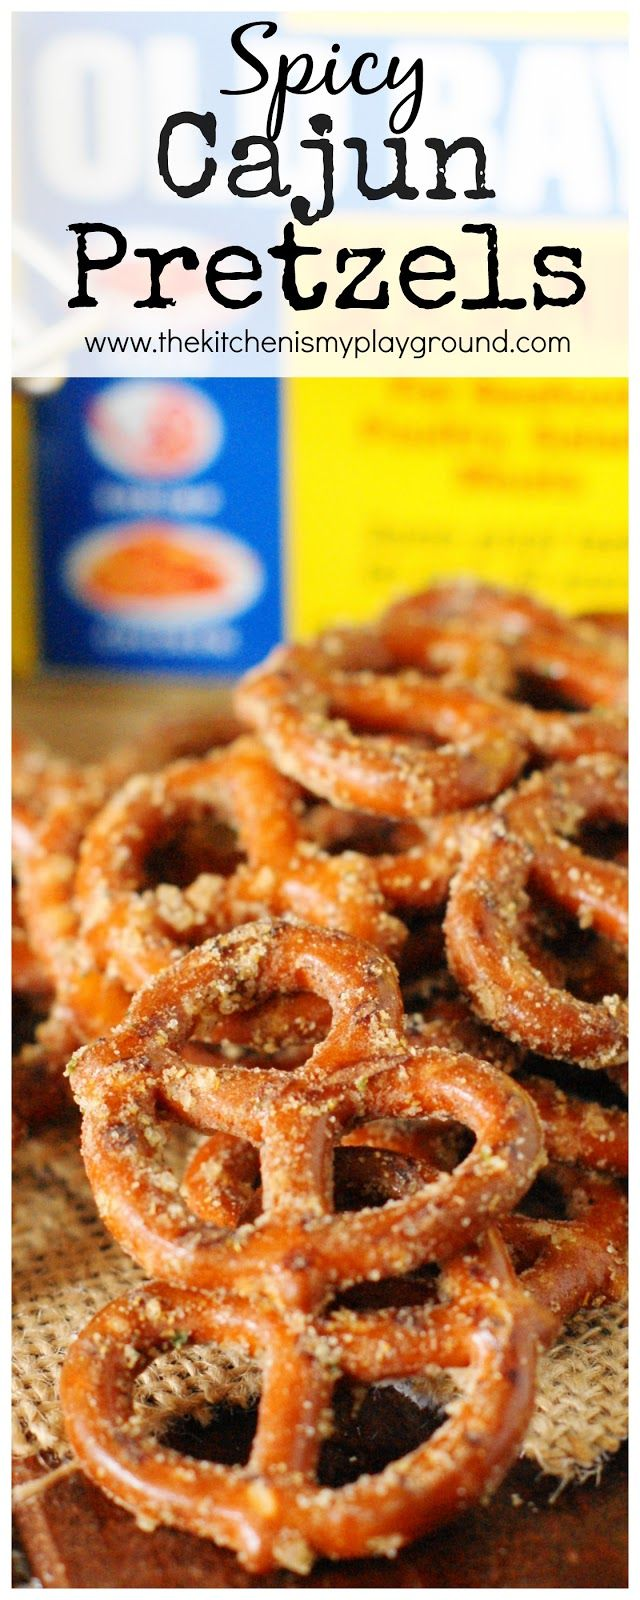 Cajun Pretzels ~ Mini pretzel twists seasoned with Old Bay, Ranch seasoning, and cayenne.  They're addictively delicious.  www.thekitchenismyplayground.com